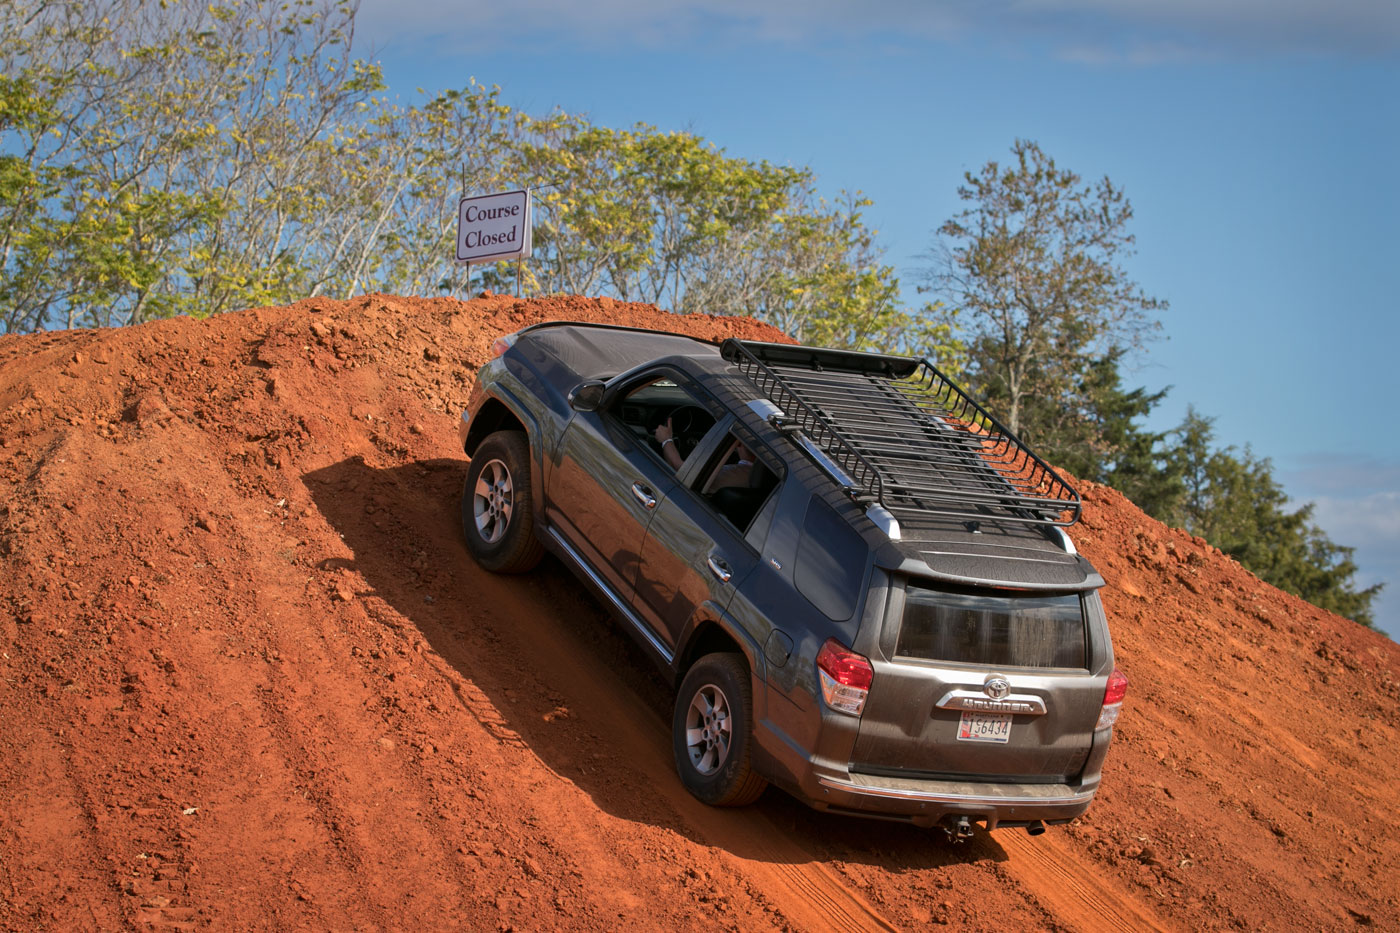 2019 Overland Expo East: A 4Runner on a failed hill climb on the practice course.